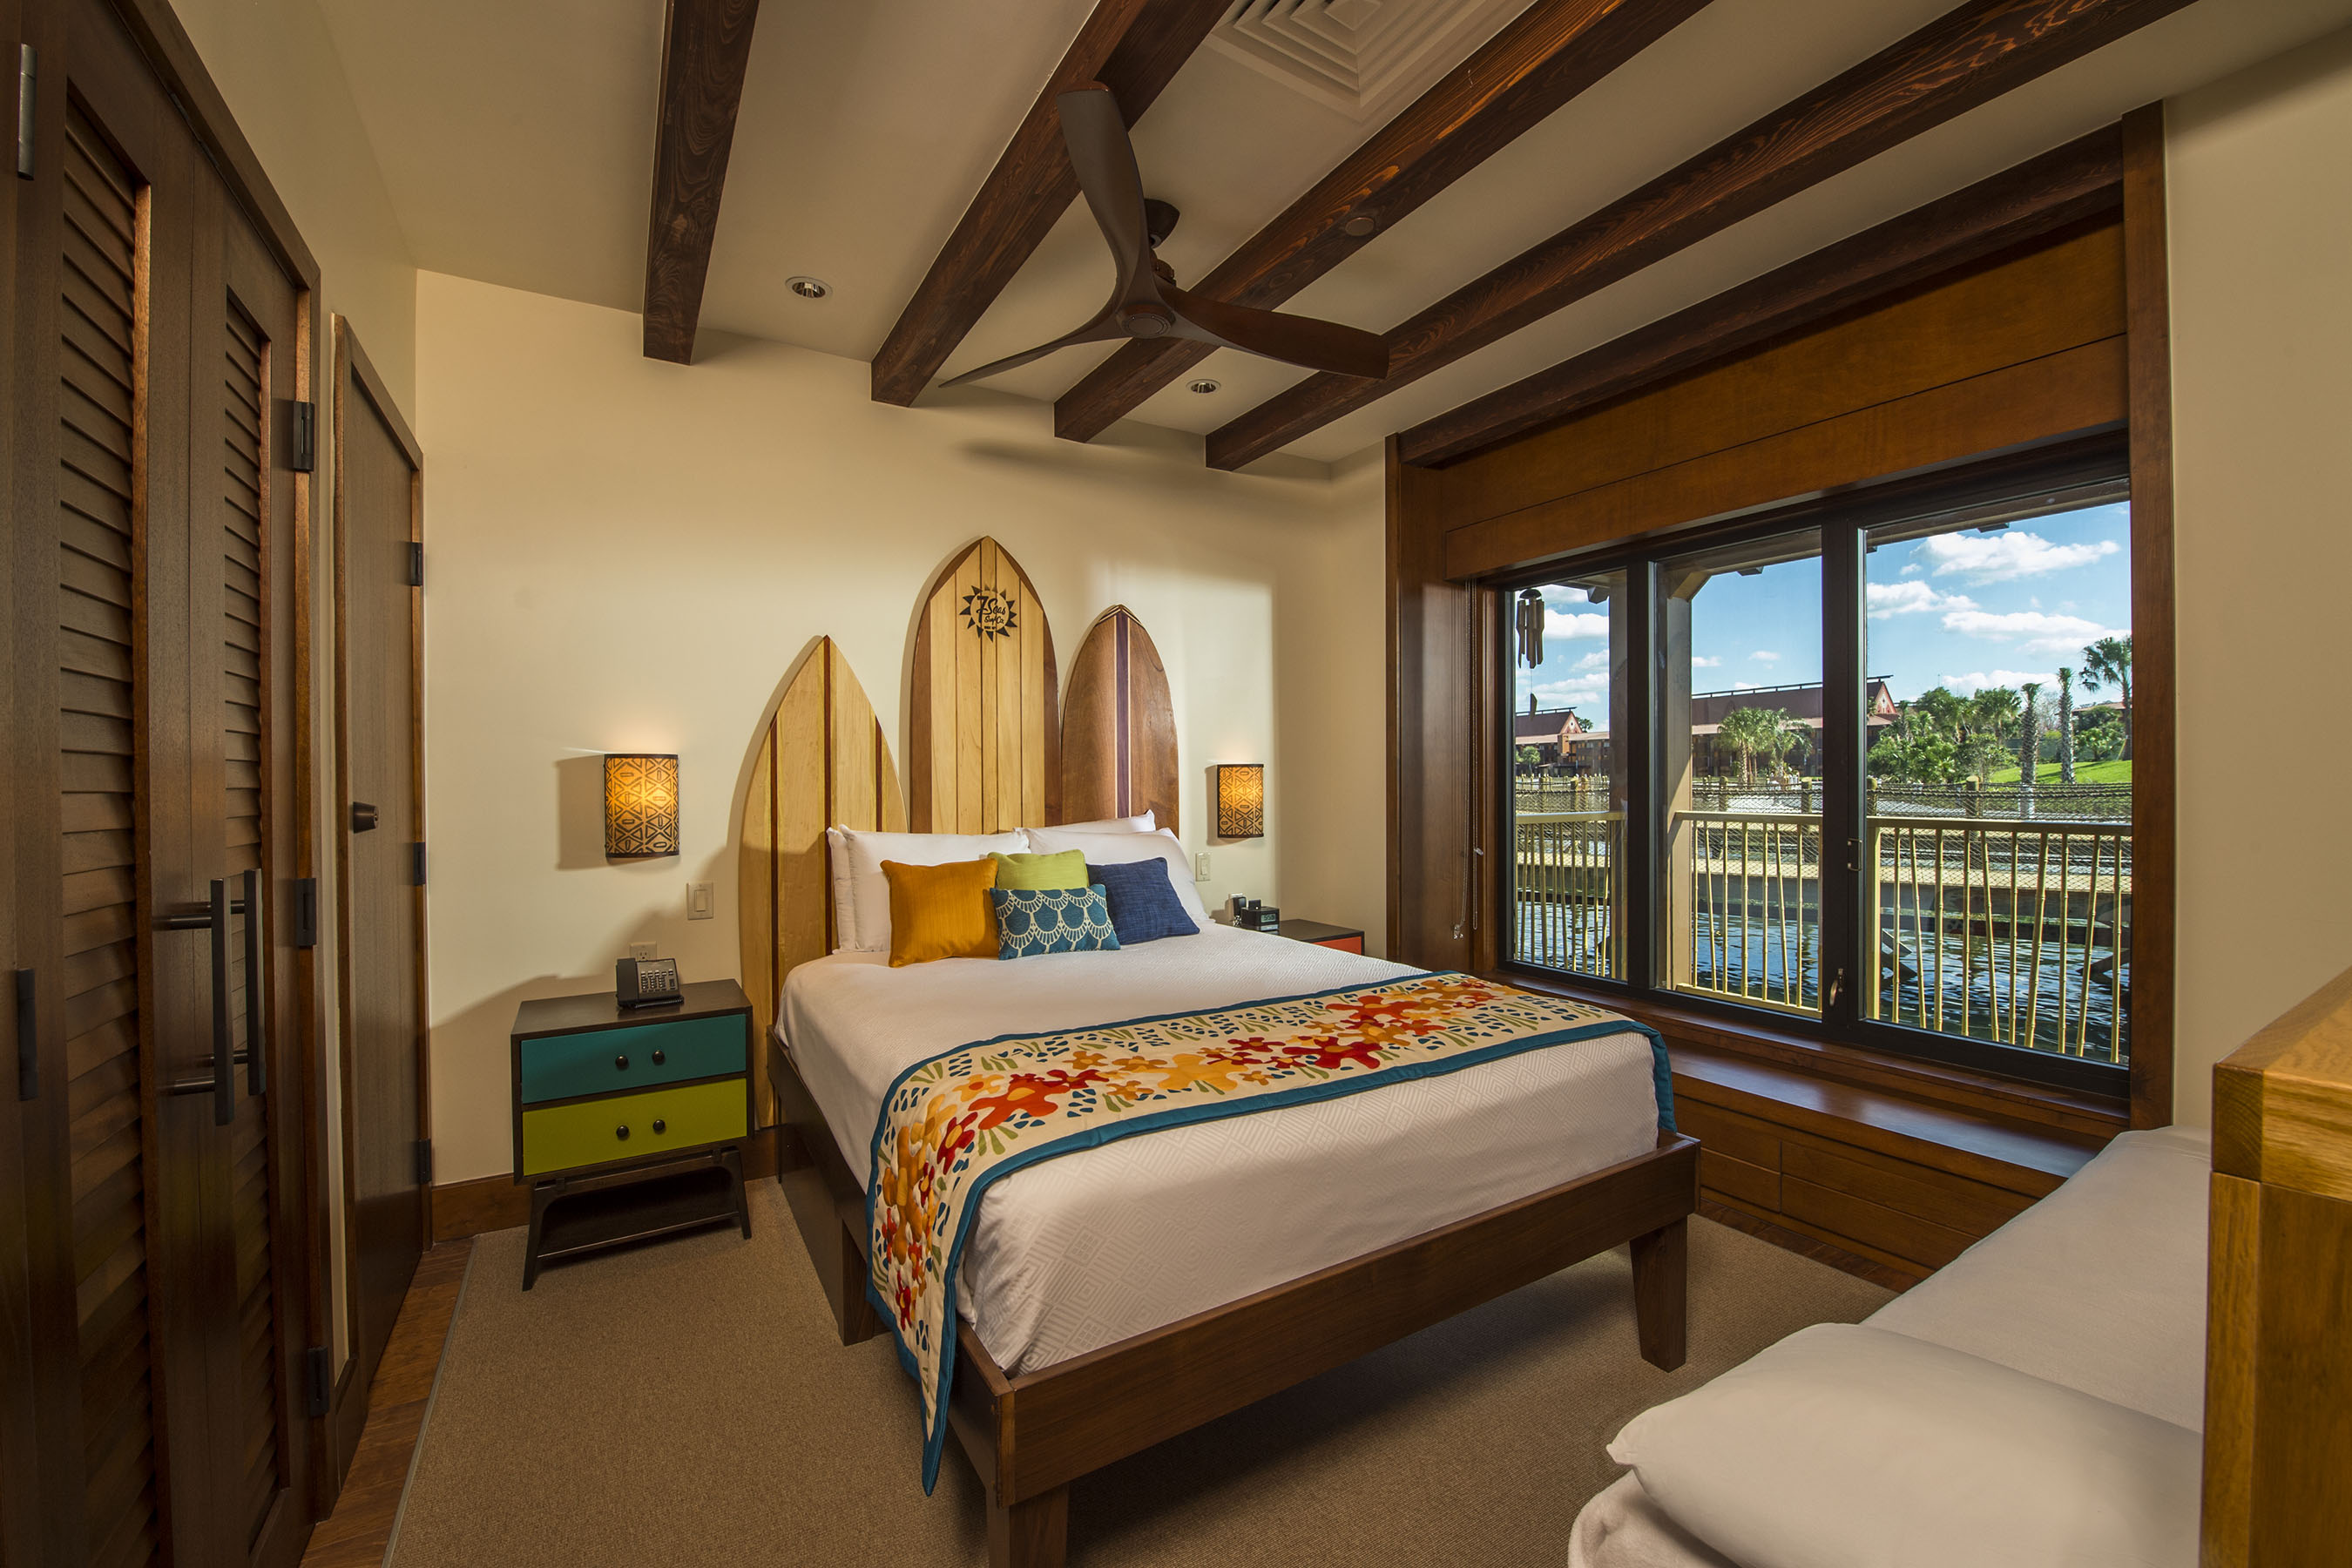 Surf Themed Bedroom Photo Tour Of The Bora Bora Bungalows At Disney S